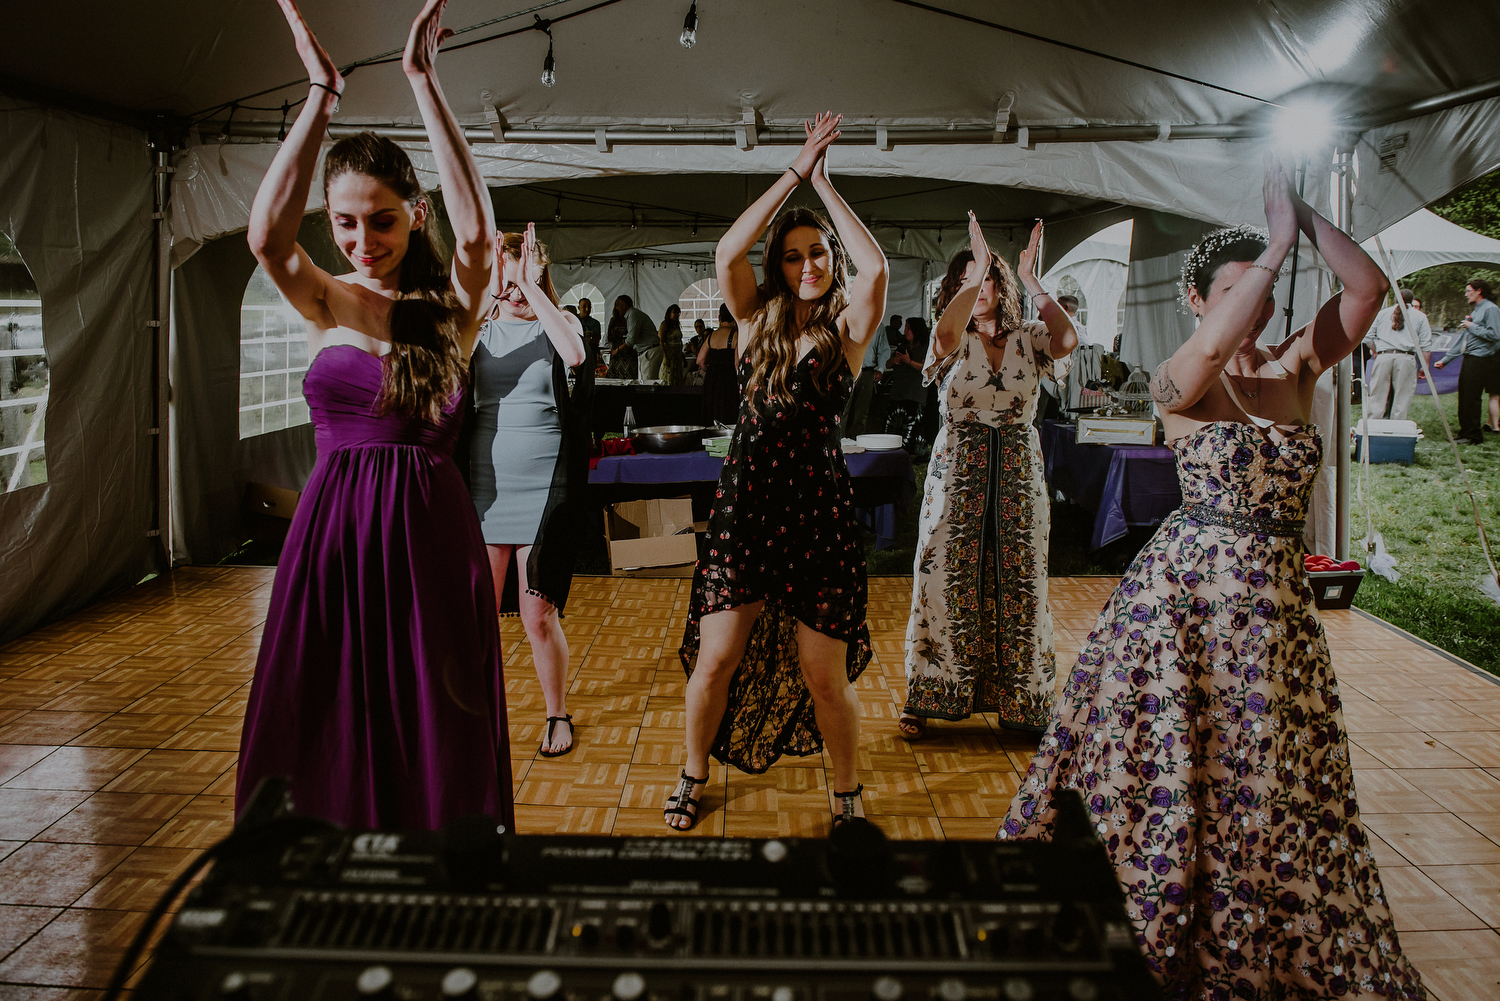 tended nj backyard wedding dance floor